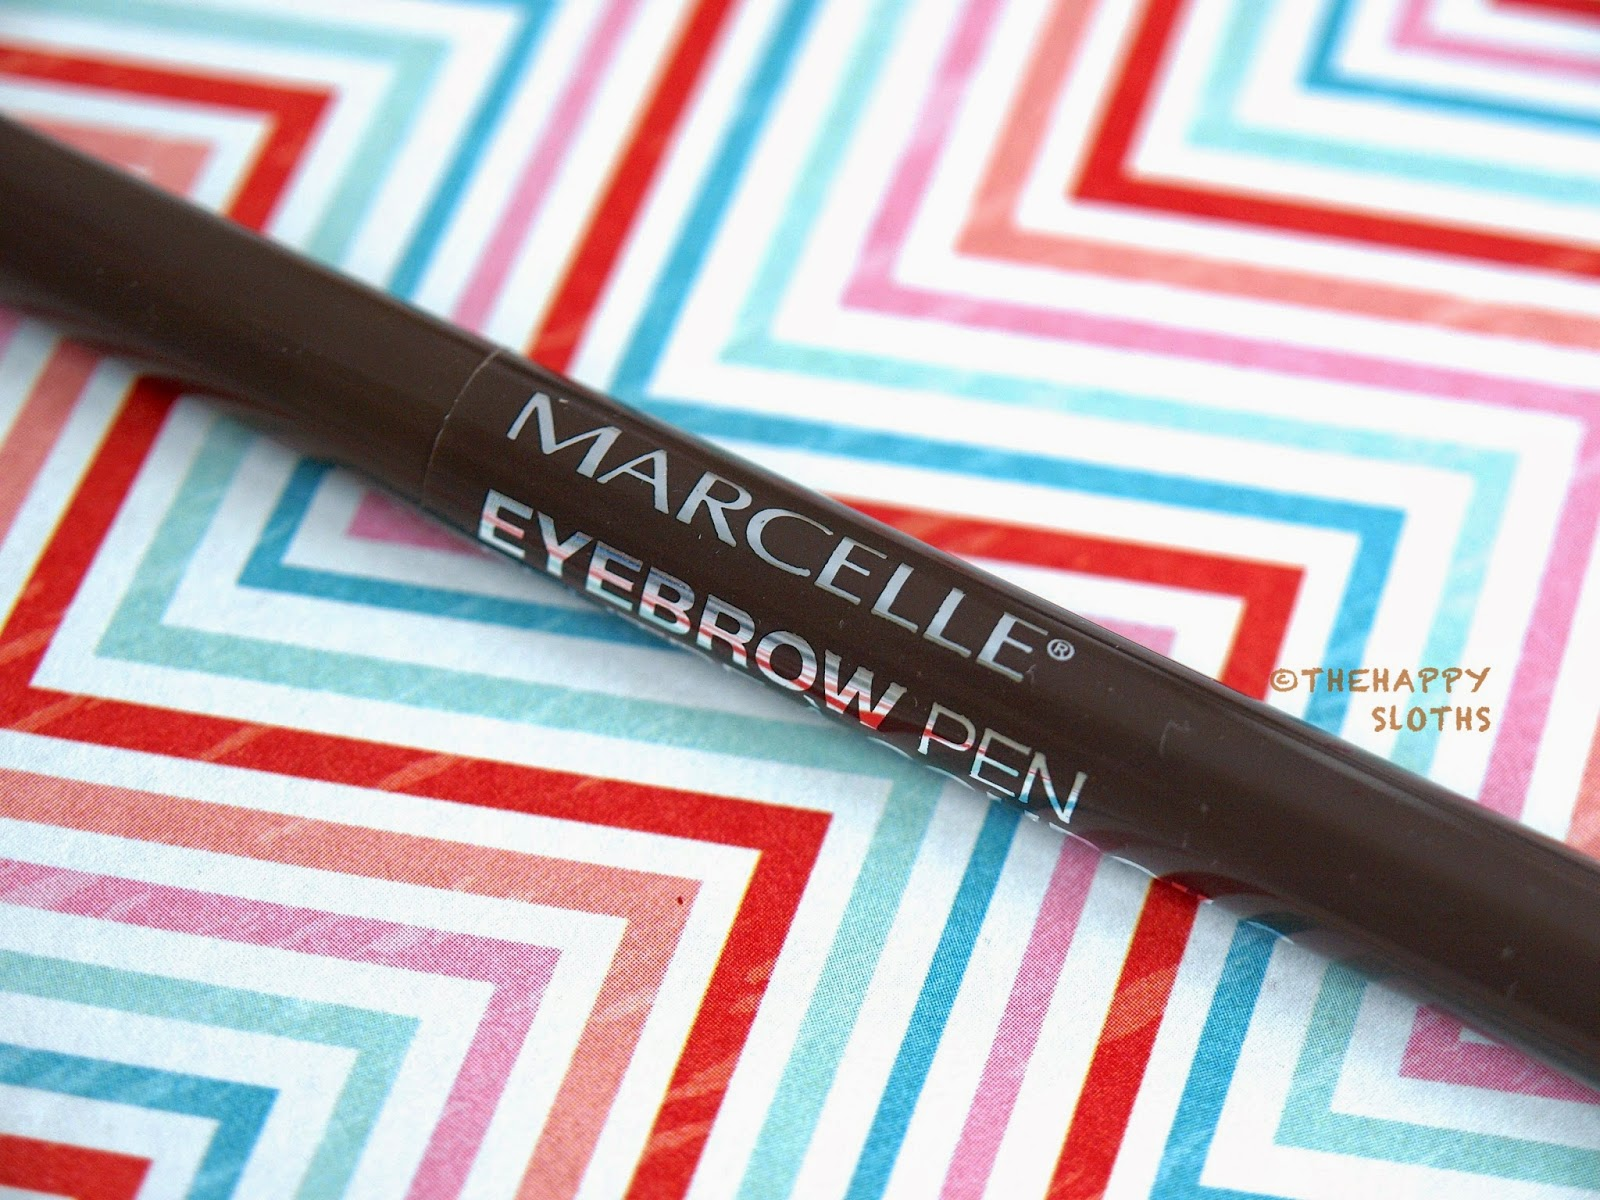 Marcelle Eyebrow Pen: Review and Swatches